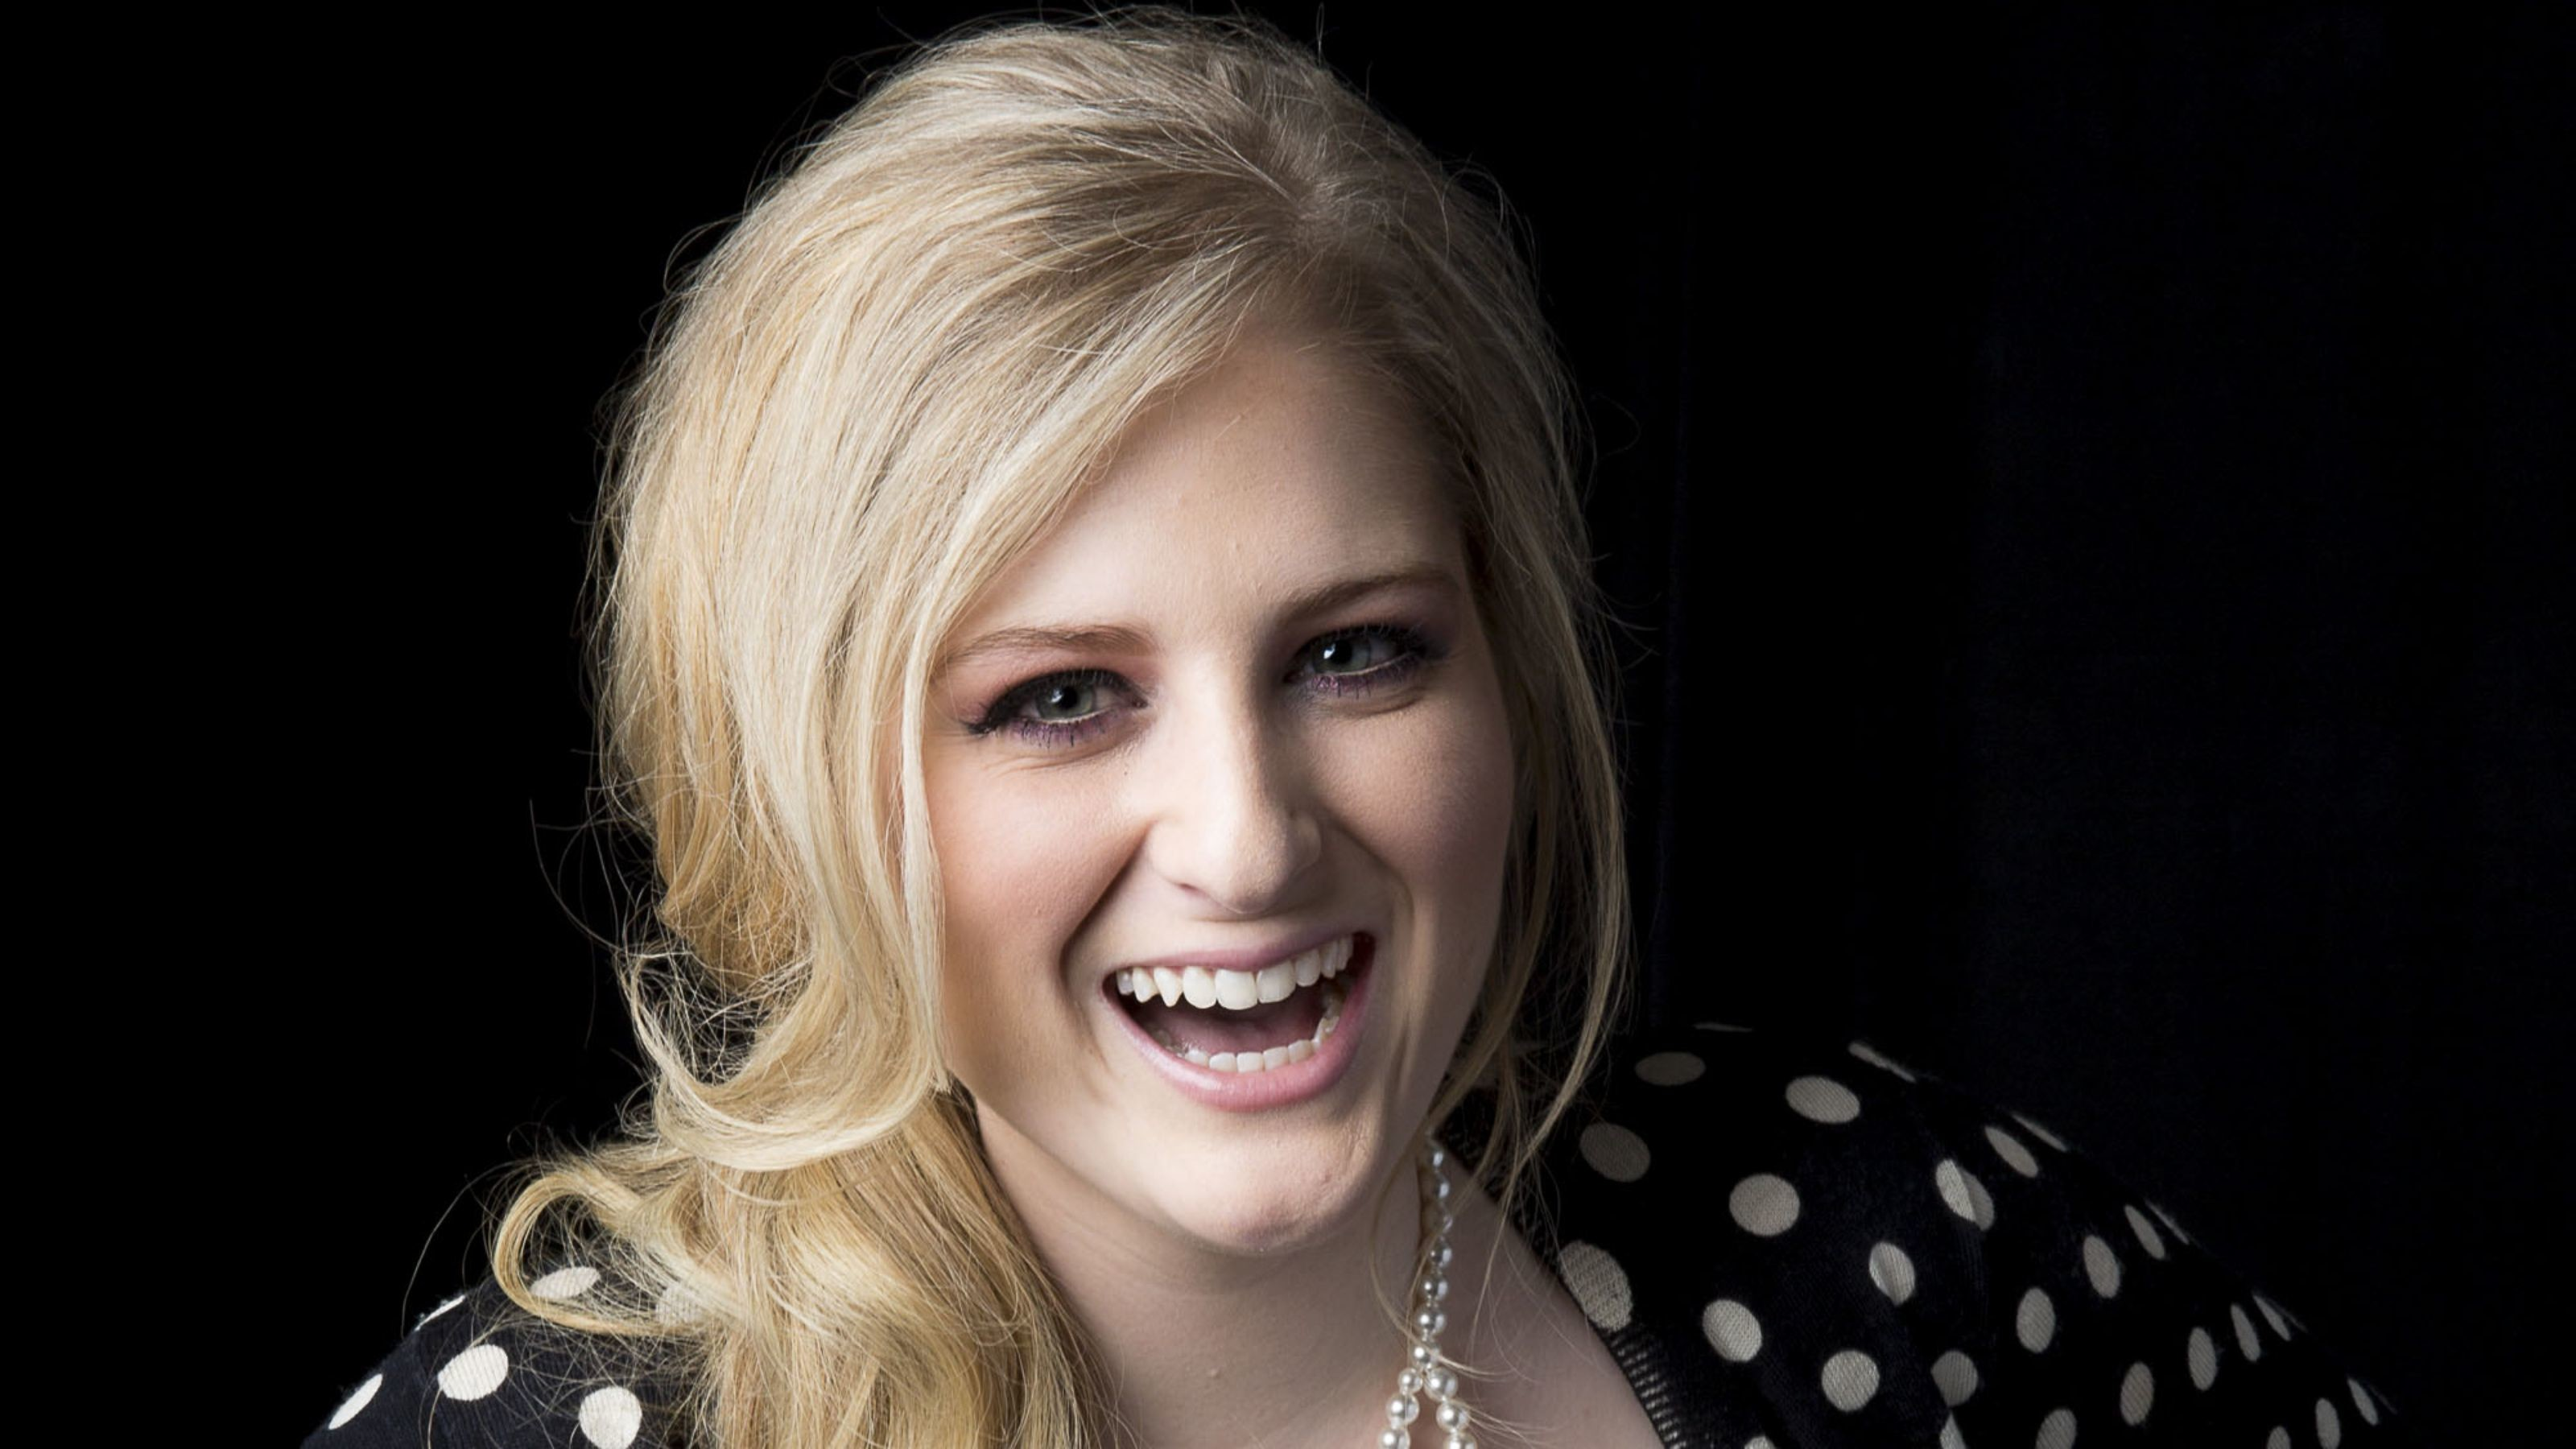 Meghan Trainor 15 Free Wallpaper